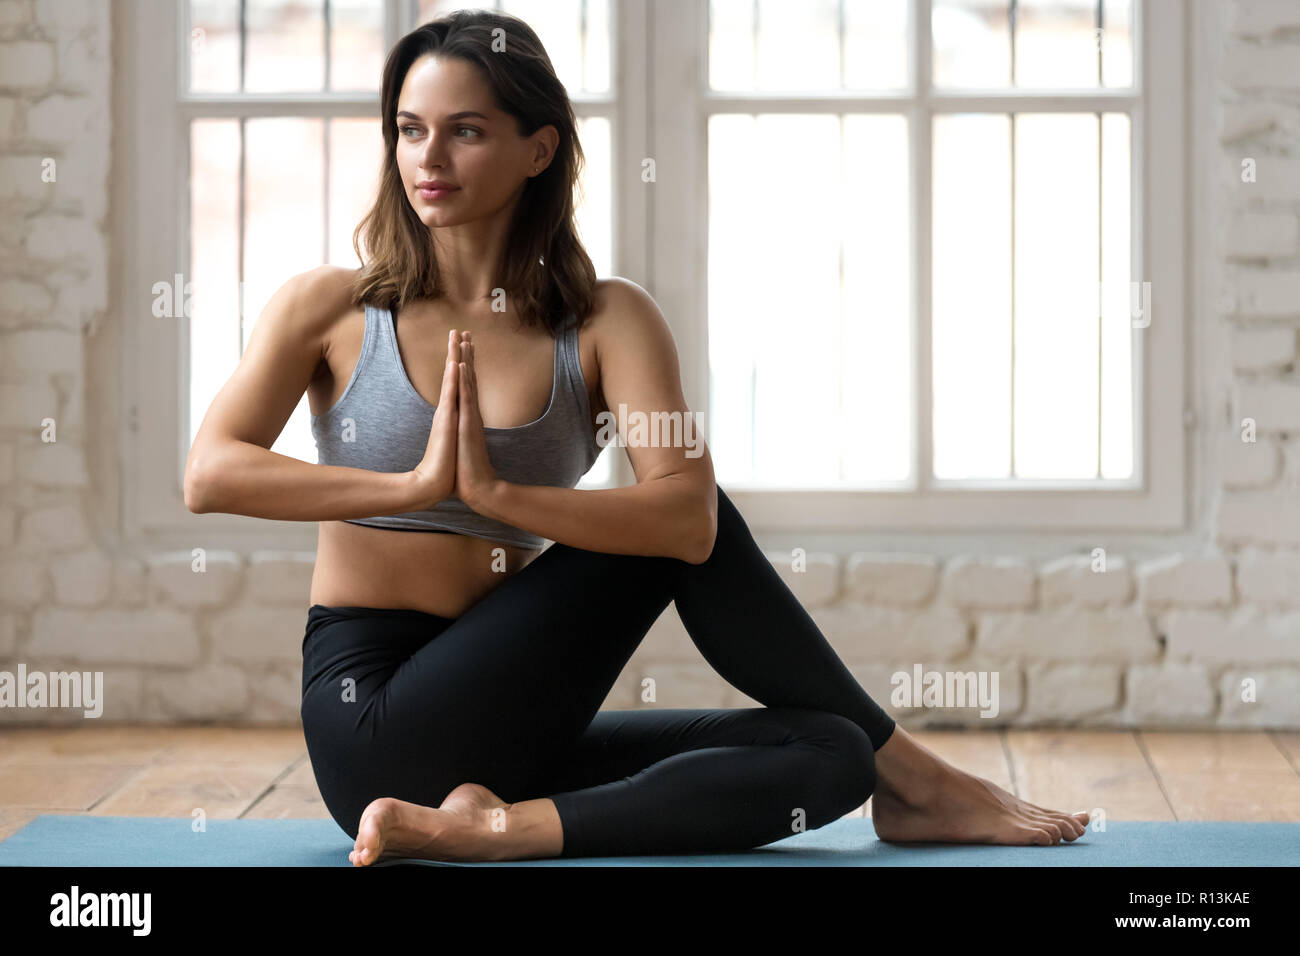 Young woman practicing yoga, doing Ardha Matsyendrasana pose - Stock Image